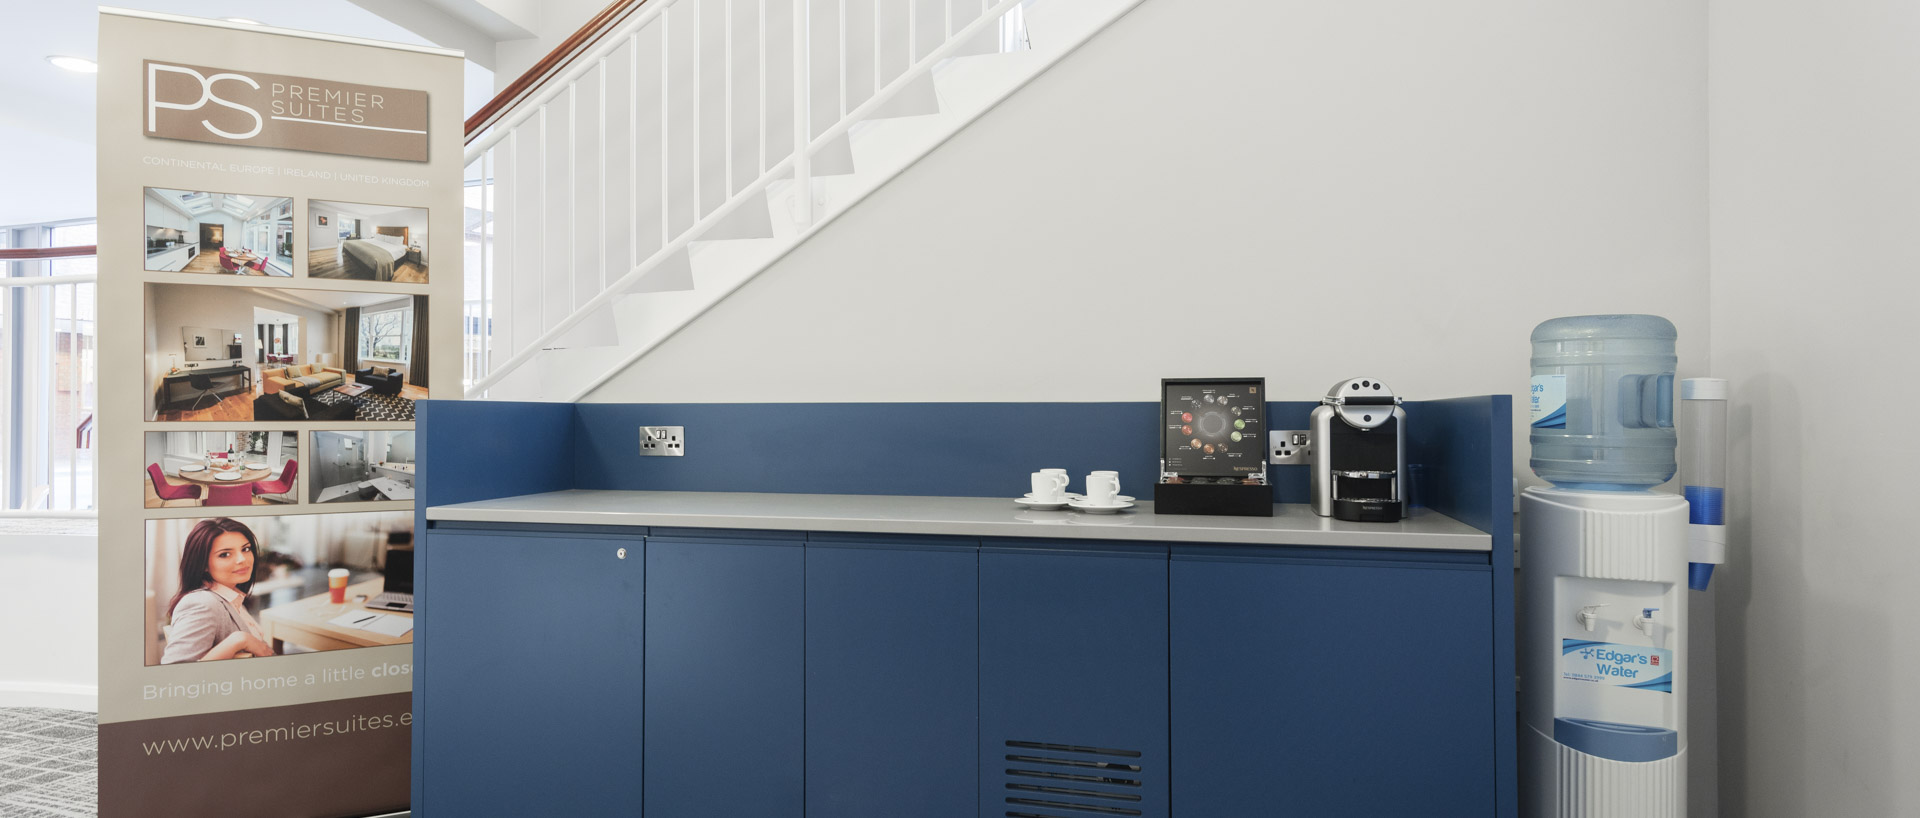 PREMIER SUITES Reading serviced apartments coffee station